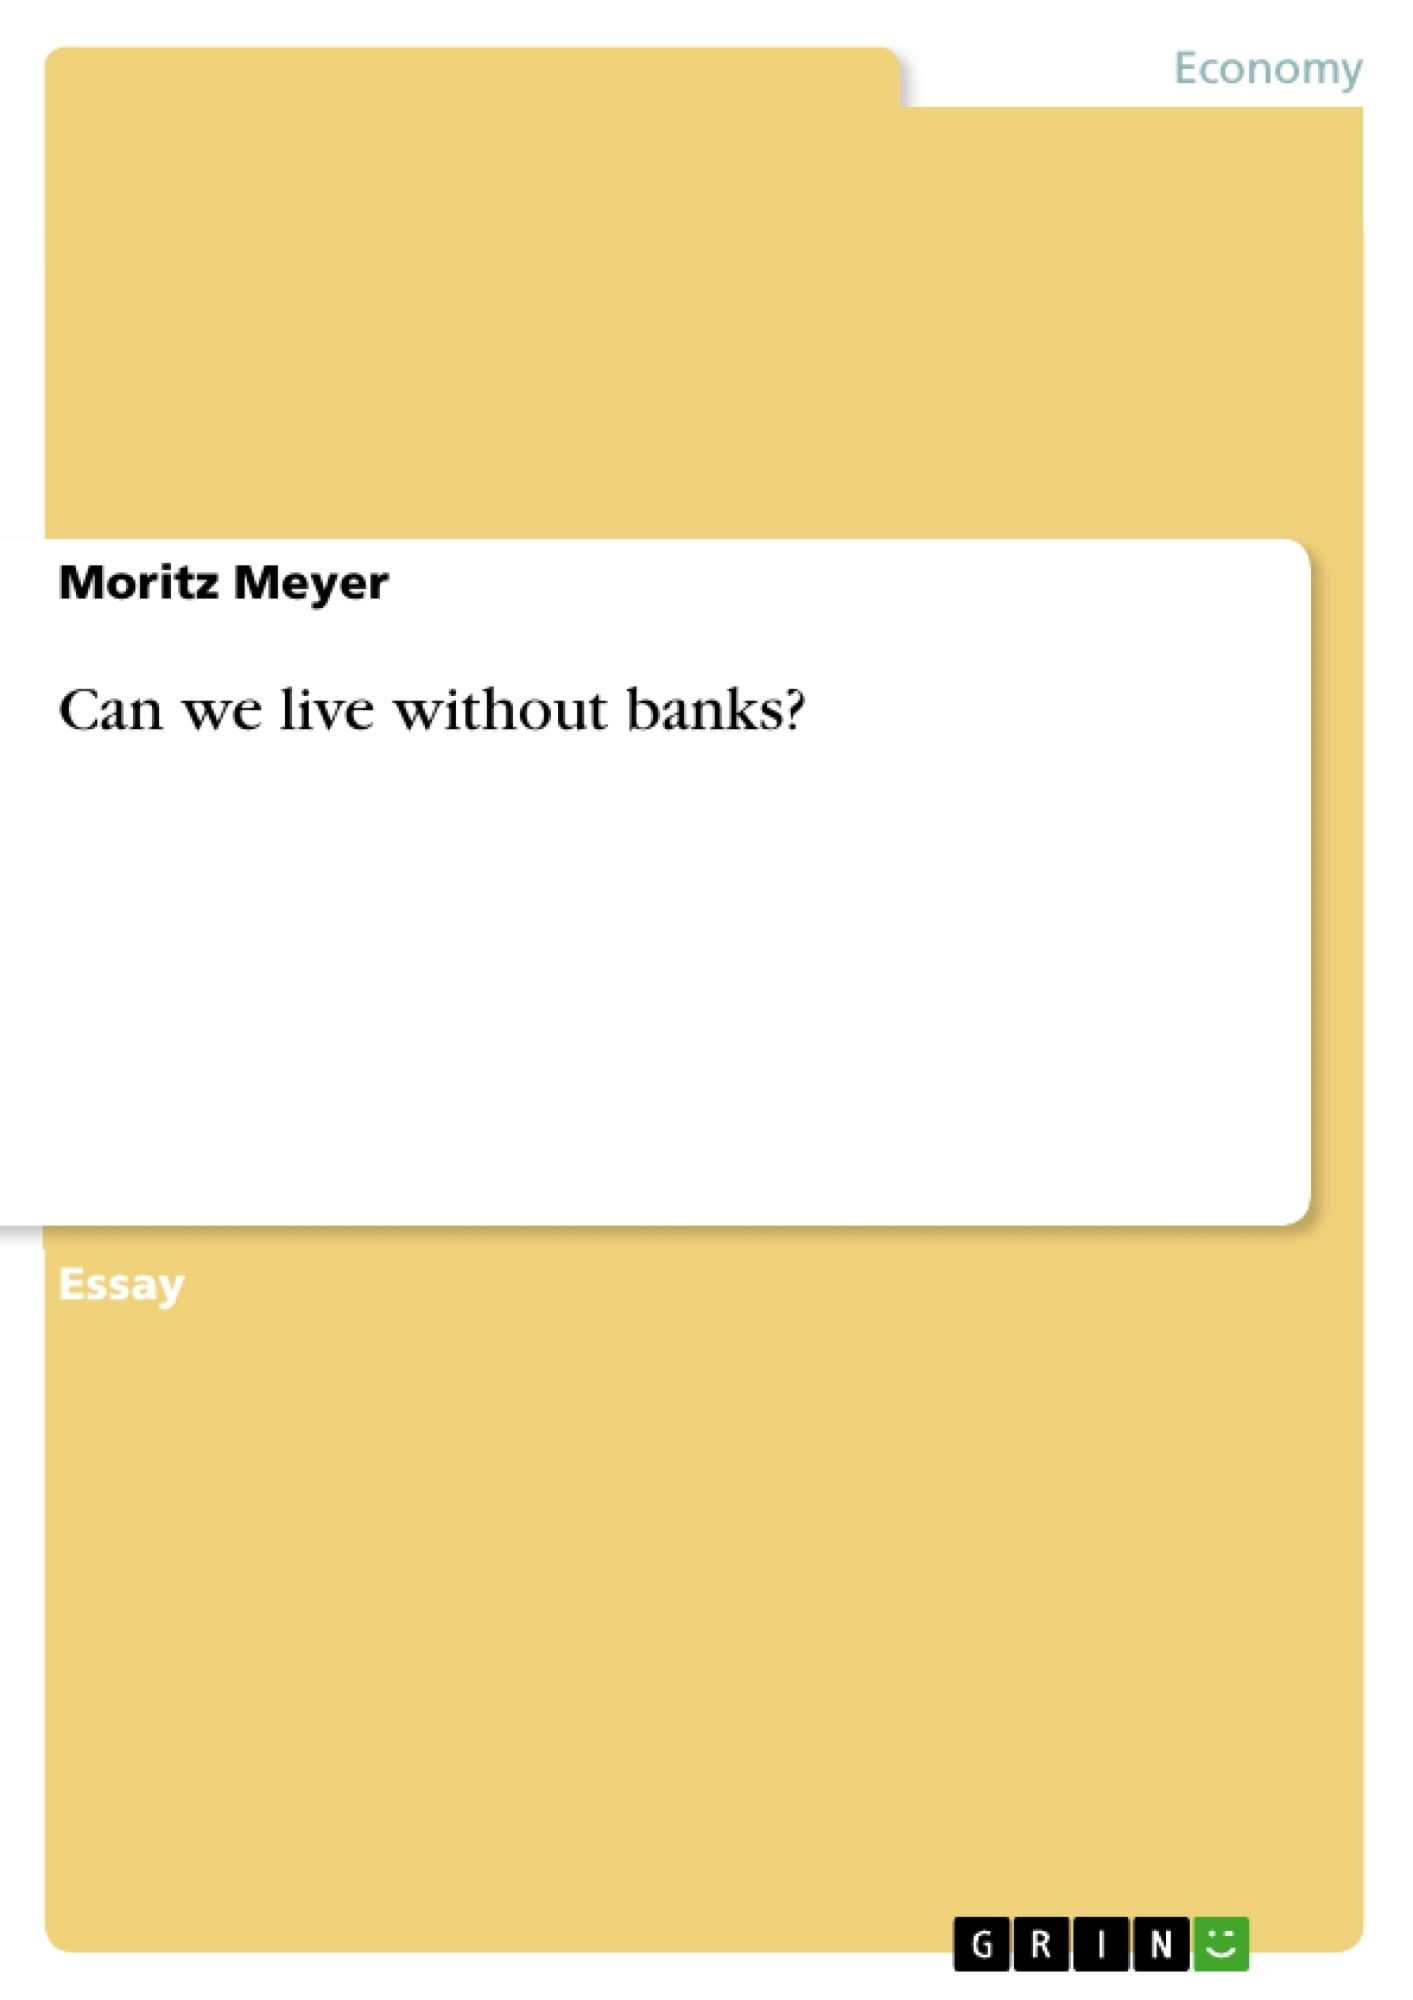 Title: Can we live without banks?